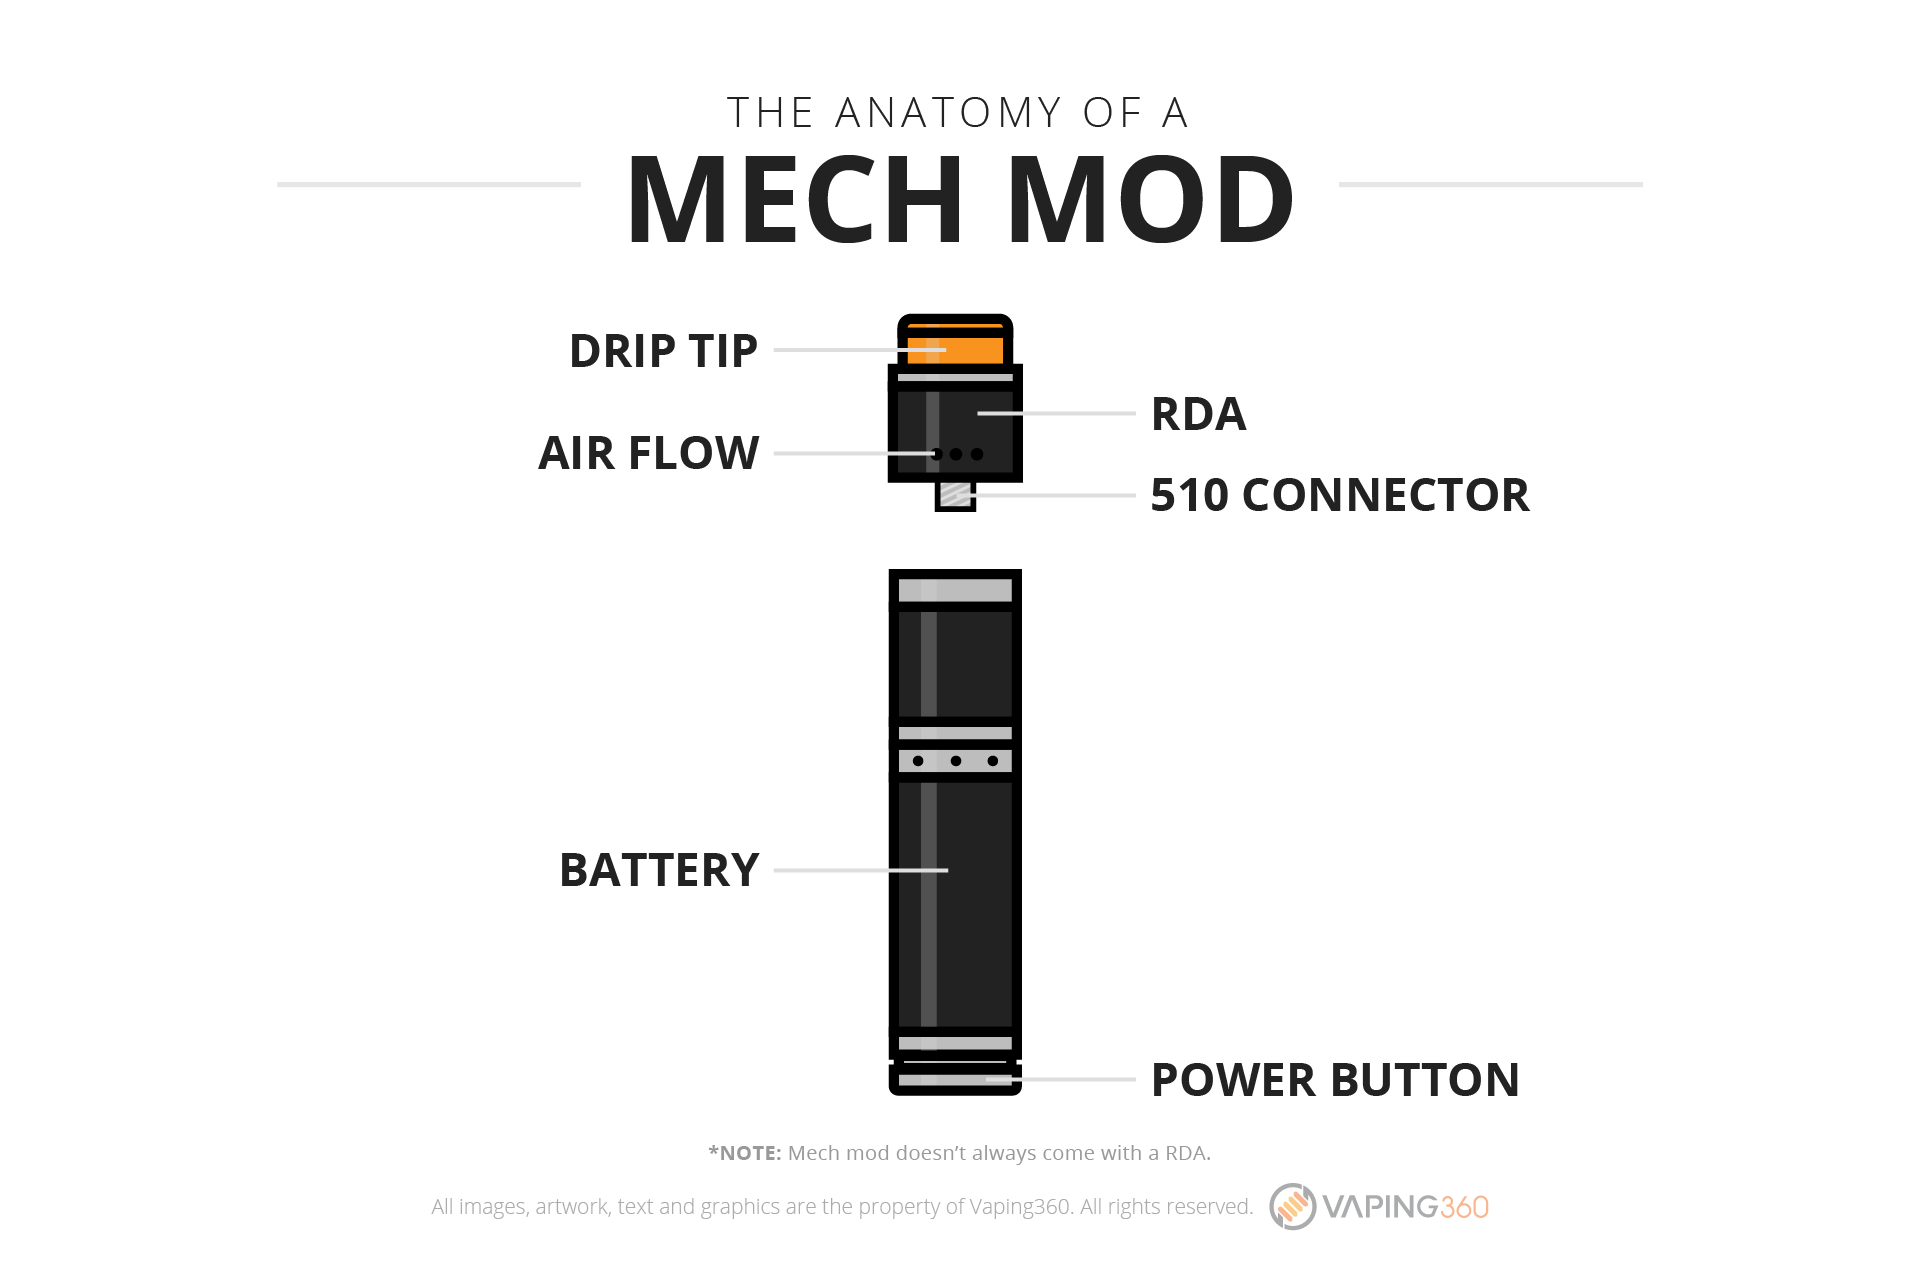 What is a mech mod?